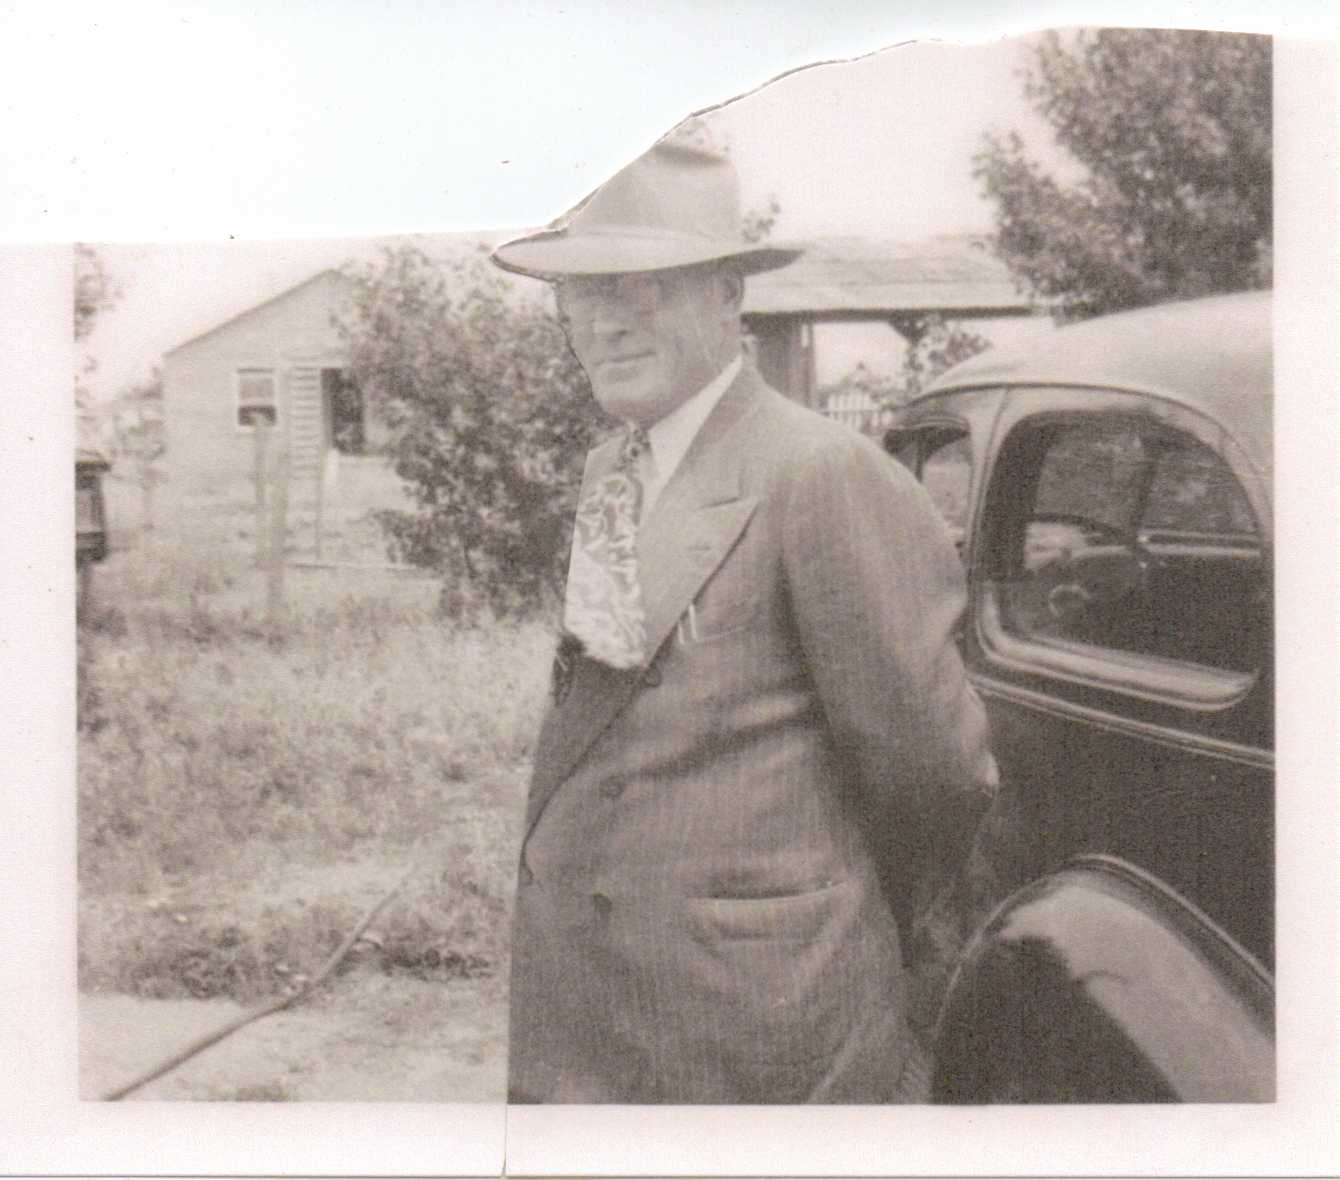 Special Agent Harry Lloyd Ashley   Atchison, Topeka and Santa Fe Railroad Police Department, Railroad Police